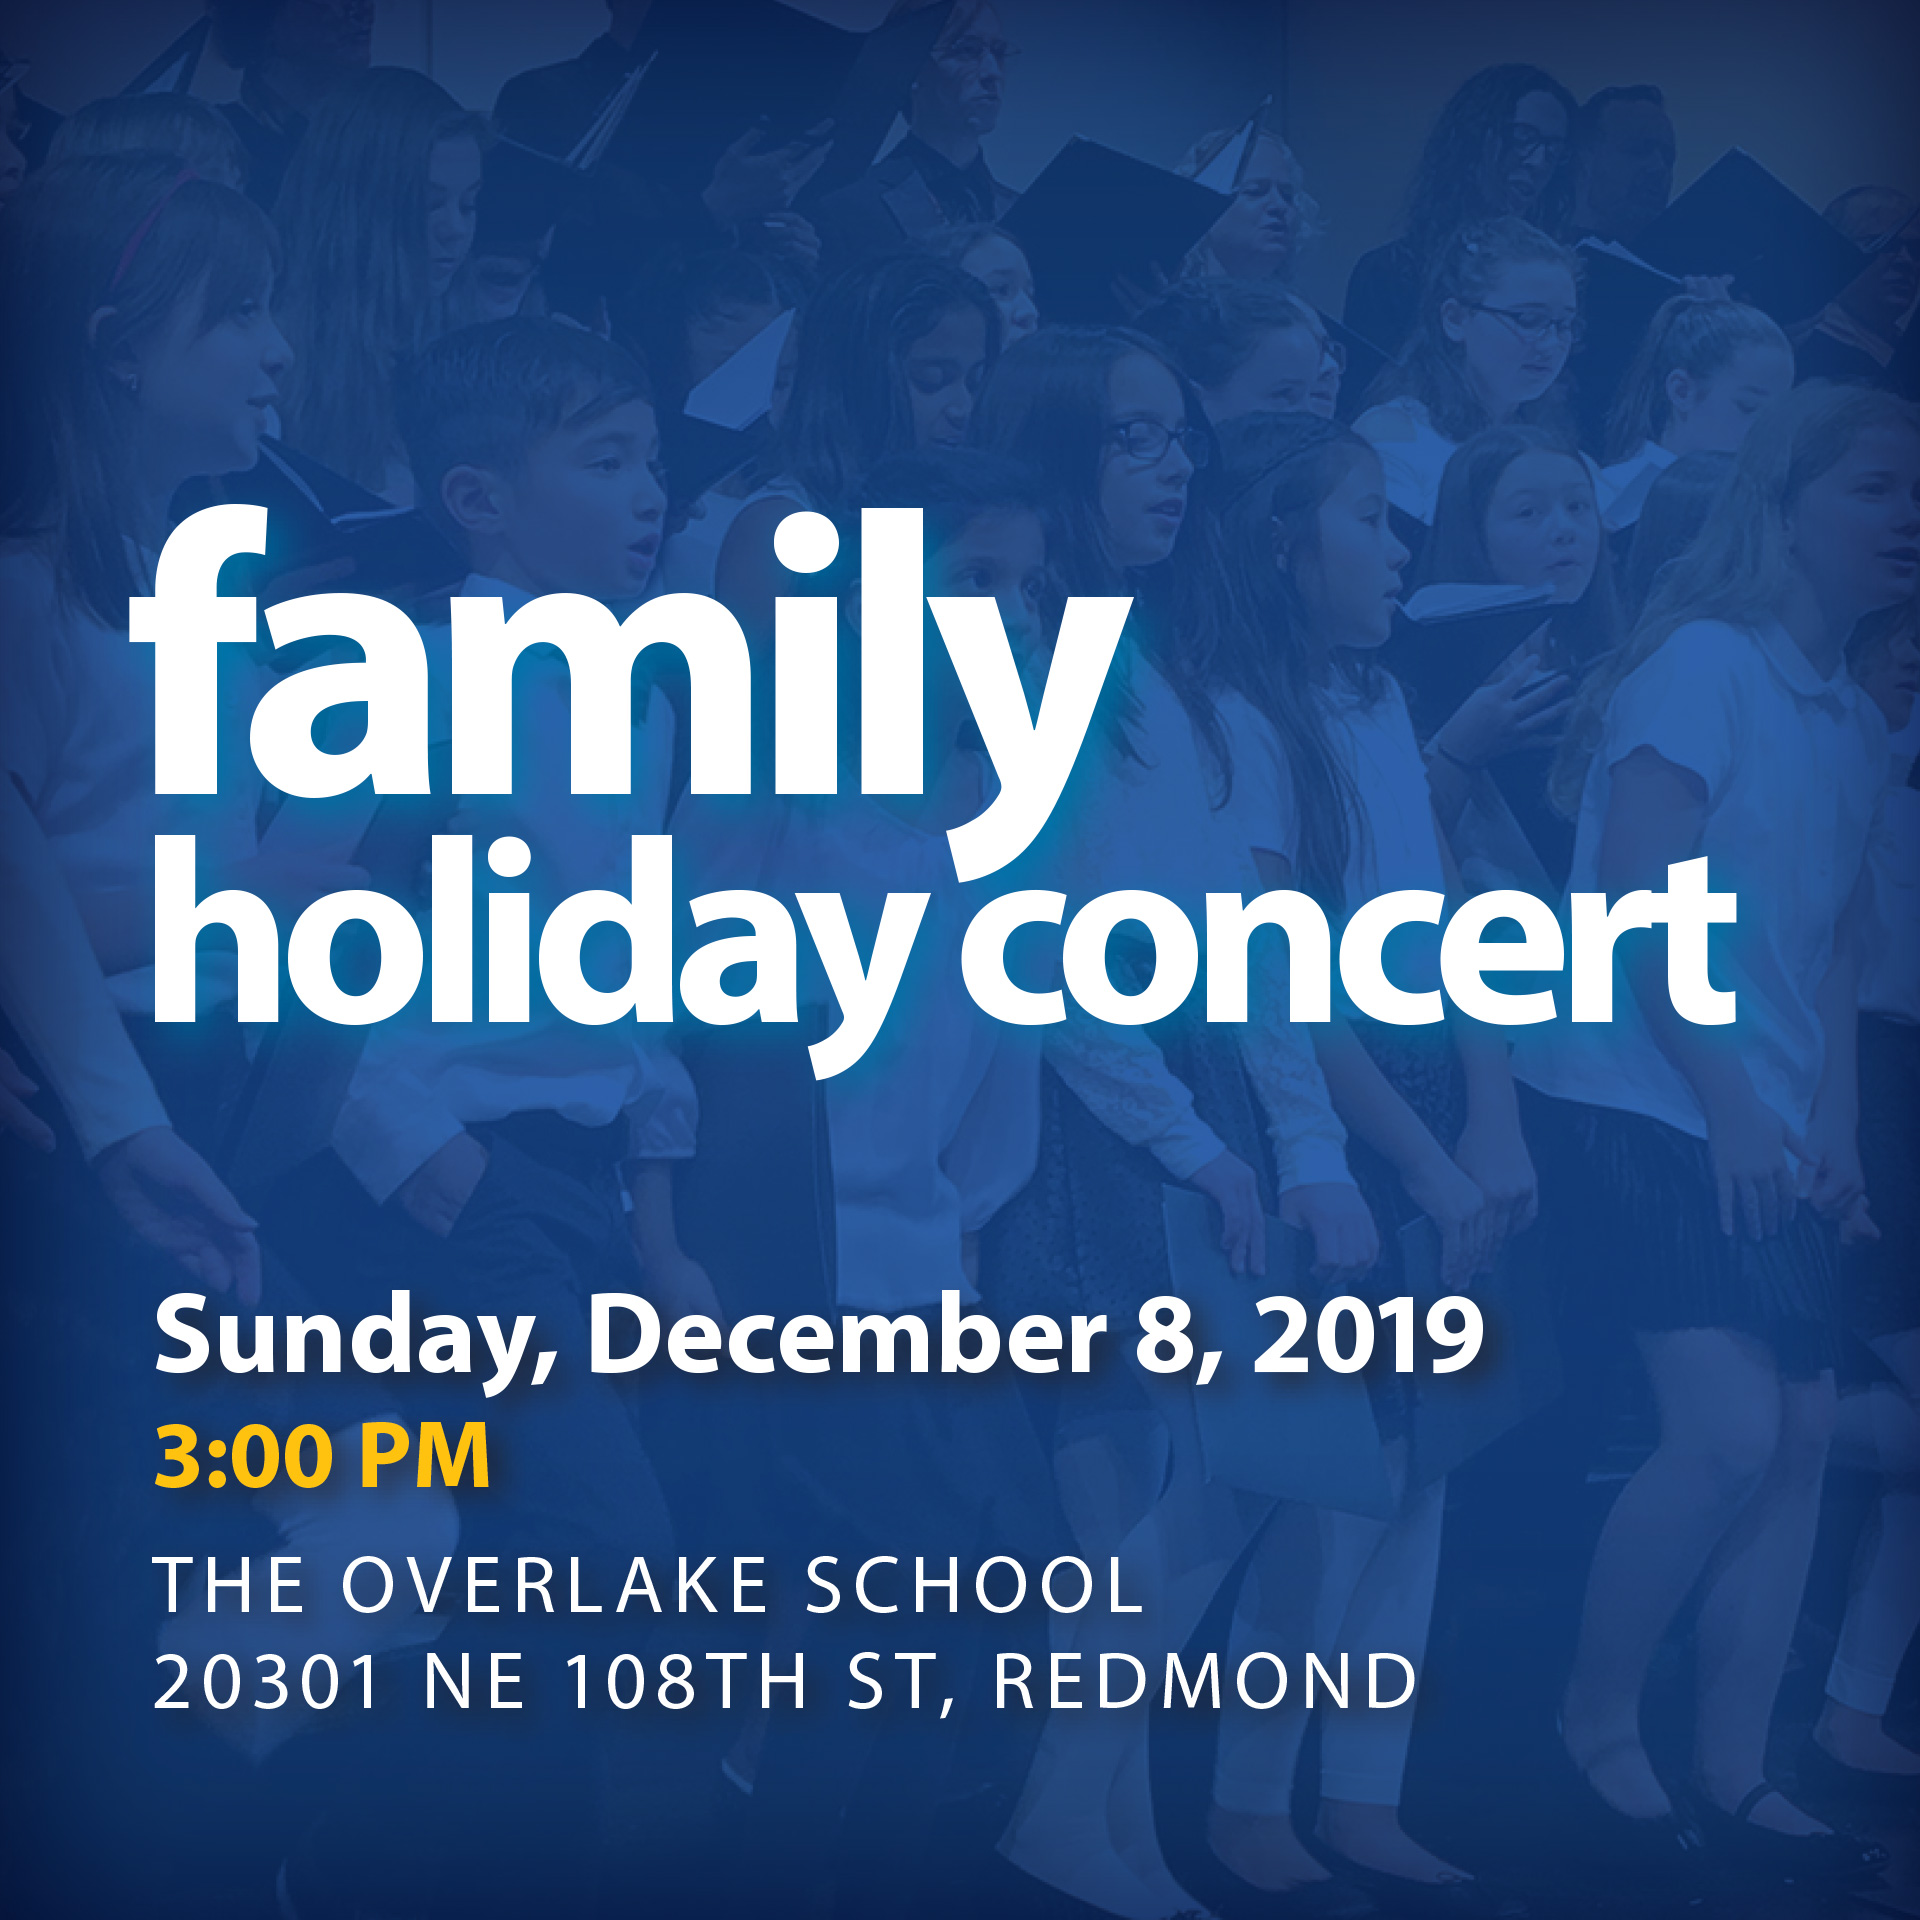 spm-2019-squarebox-family-holiday-concert.jpg